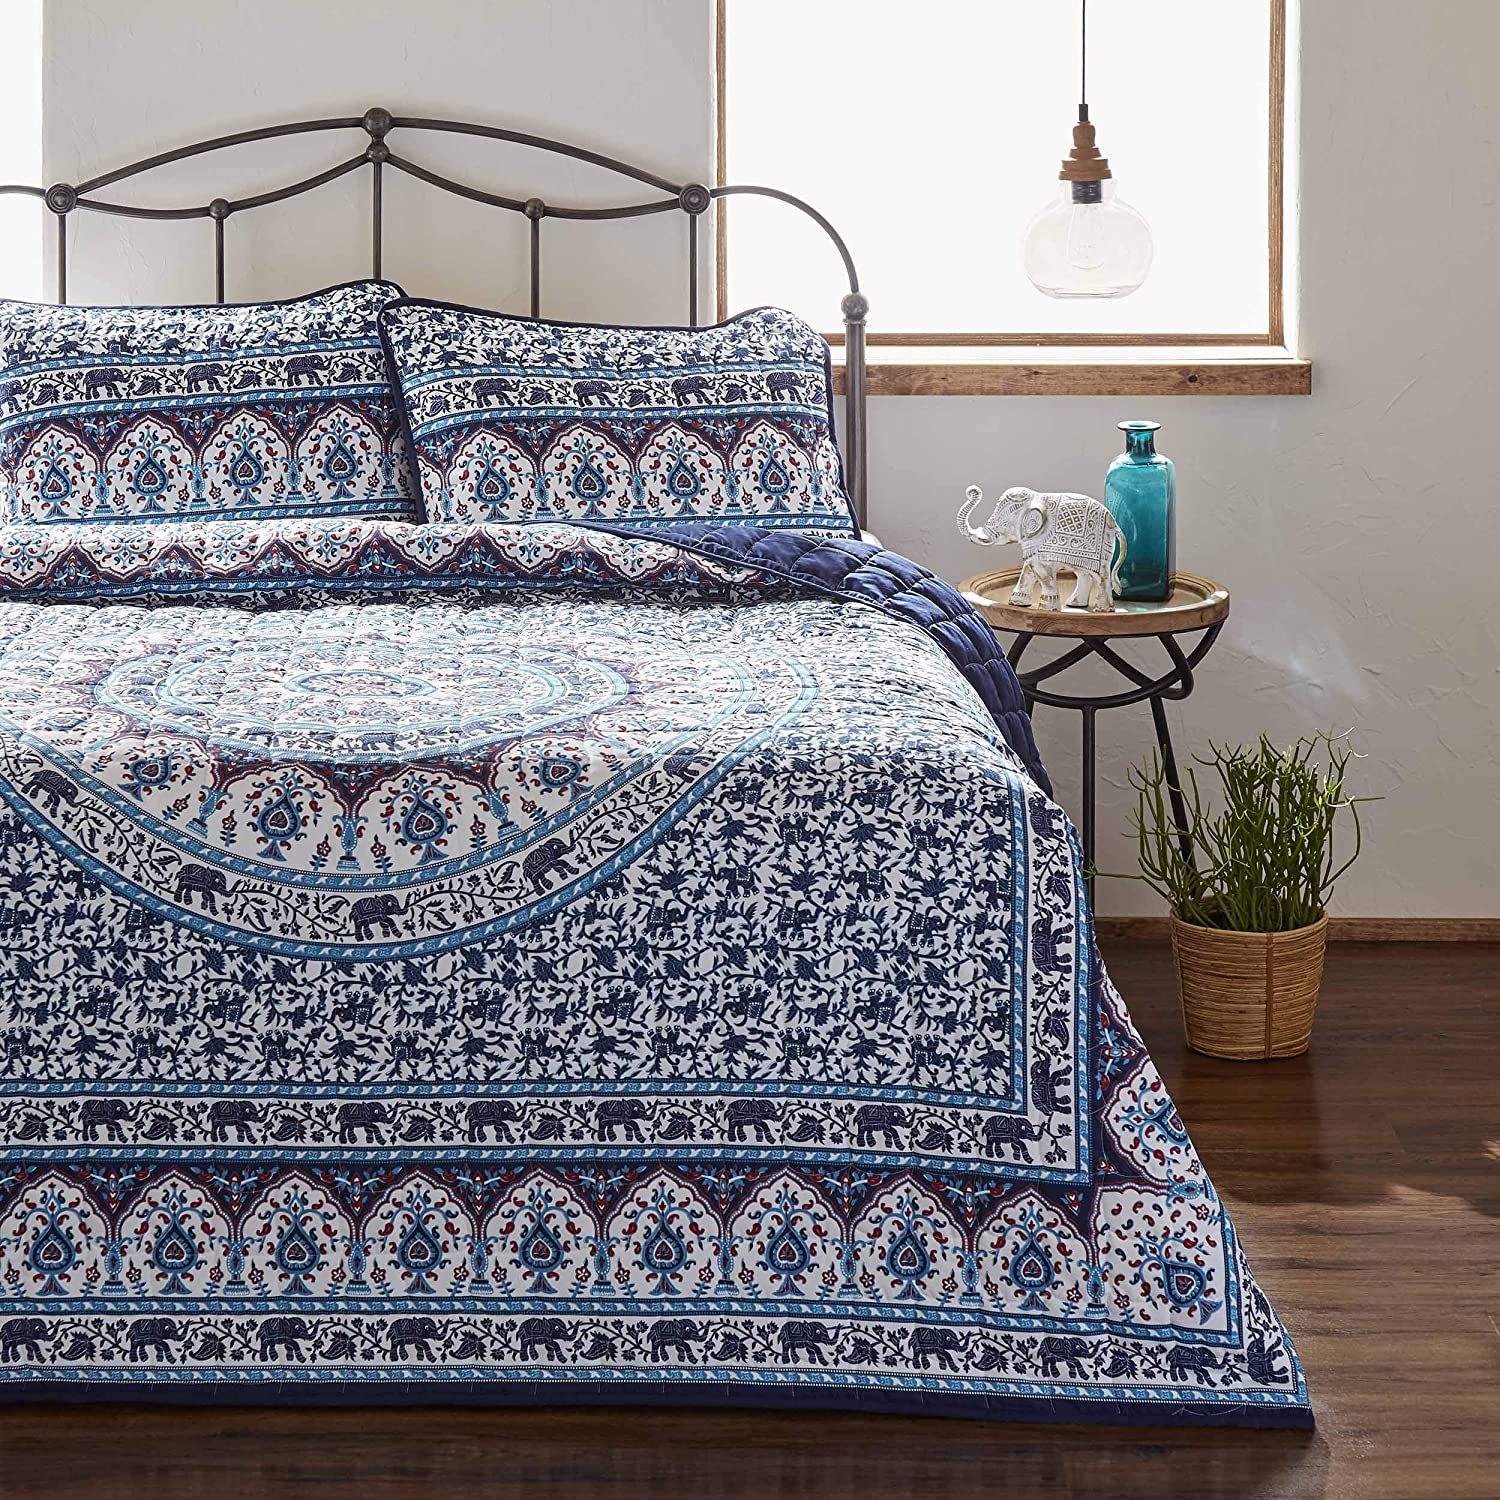 Azalea Skye Amena Quilt Set, Twin, Navy